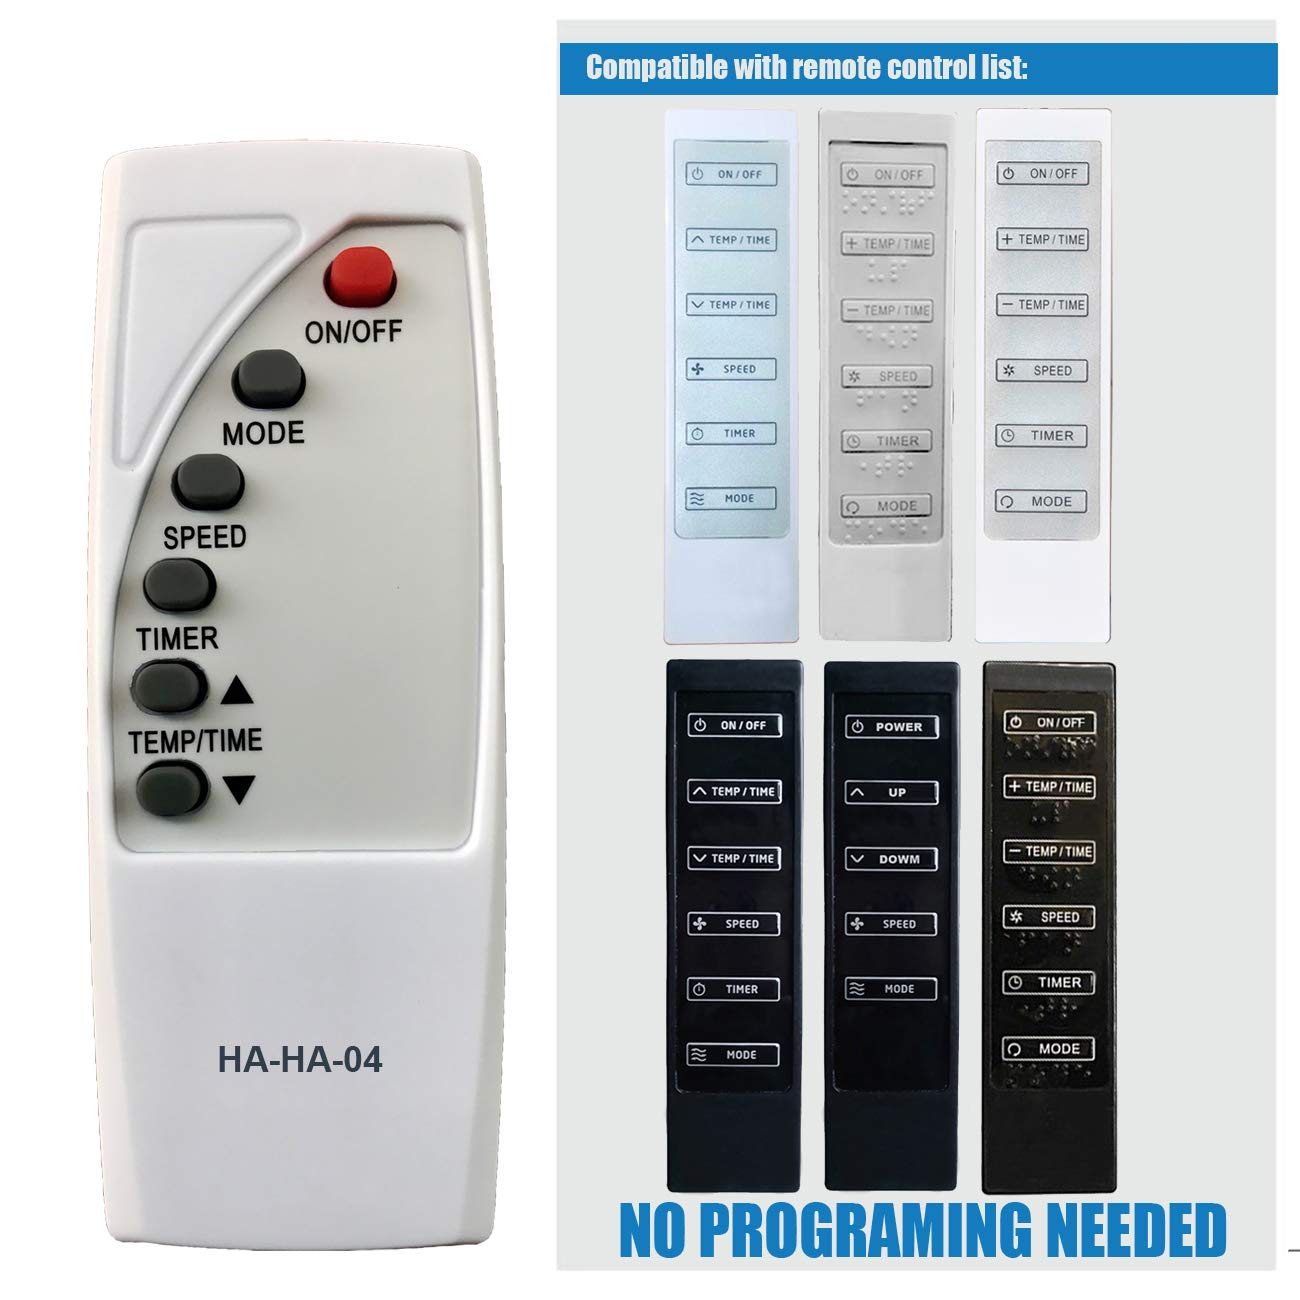 HA-HA-04 Replacement for Haier Commercial Cool Air Conditioner Remote Control A2530-450-AA11 A2530-451-AB02 AC-5620-73 AC-5620-088 AC-5620-079 AC-5620-084 AC-5620-090 A2530-451-AB05 A2530-451-AA12